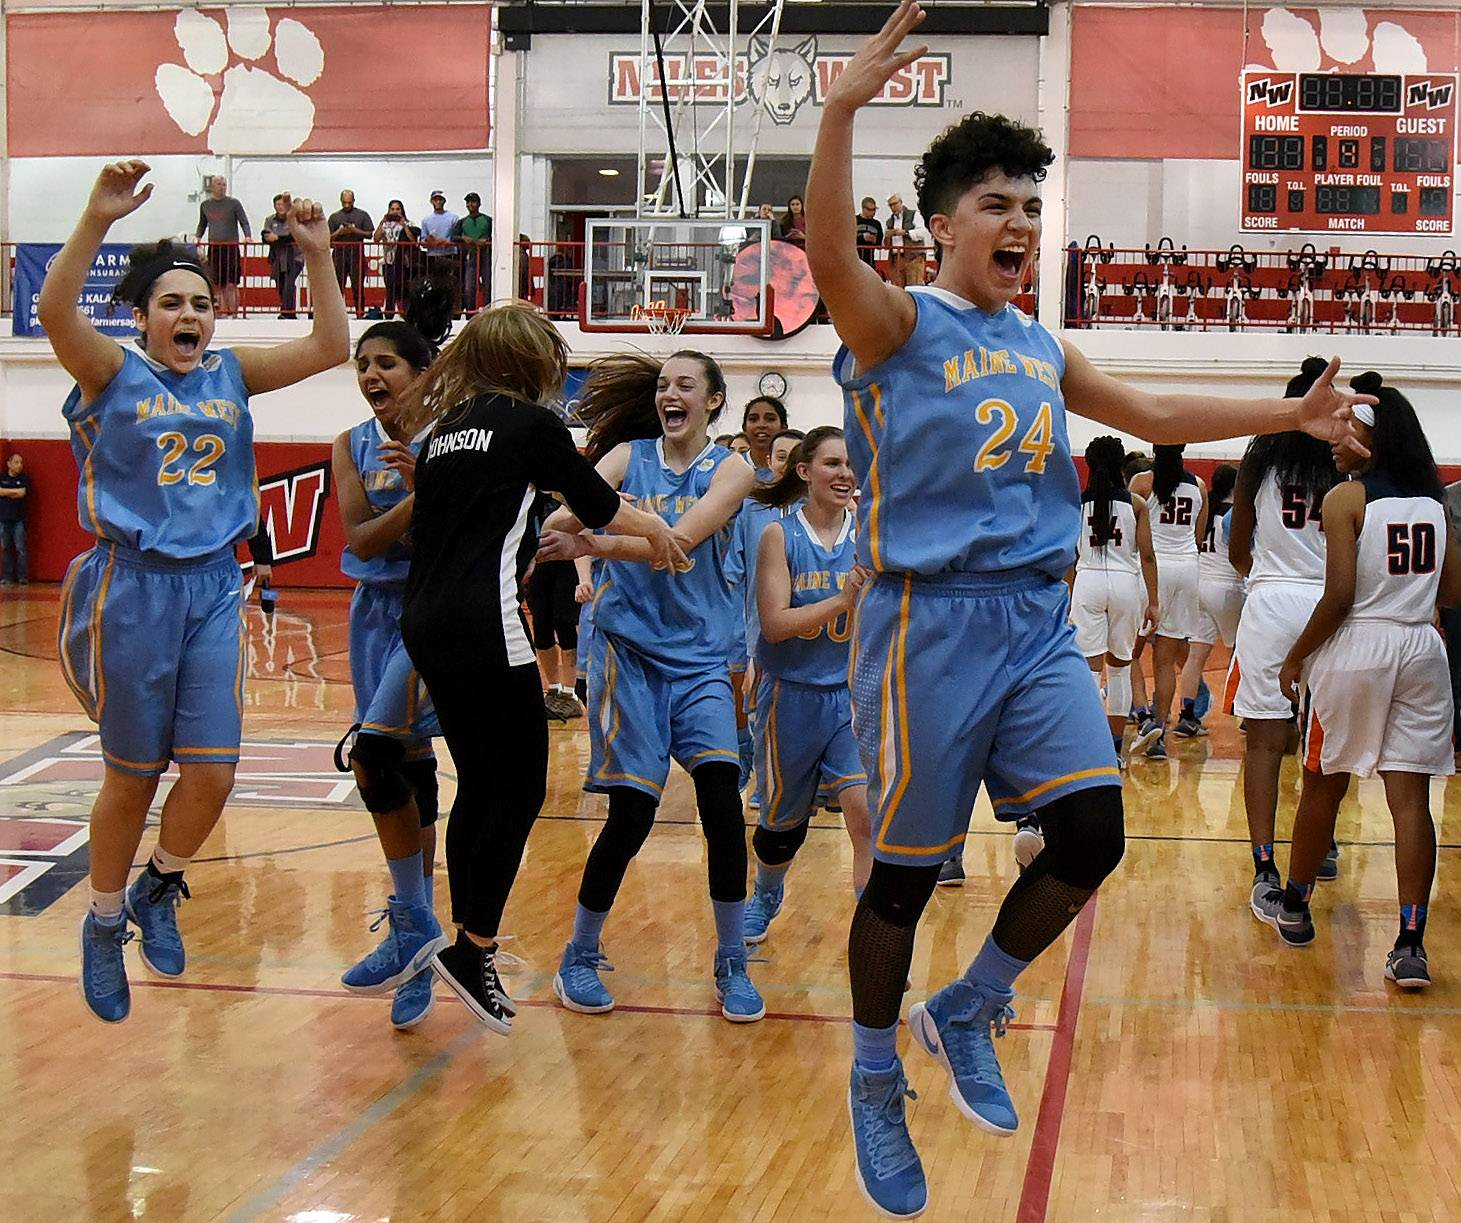 Maine West's Alisa Fallon, right and Bianca Mando jump for joy with teammates after the Warriors defeated Evanston in the Class 4A sectional final at Niles West on Thursday night.